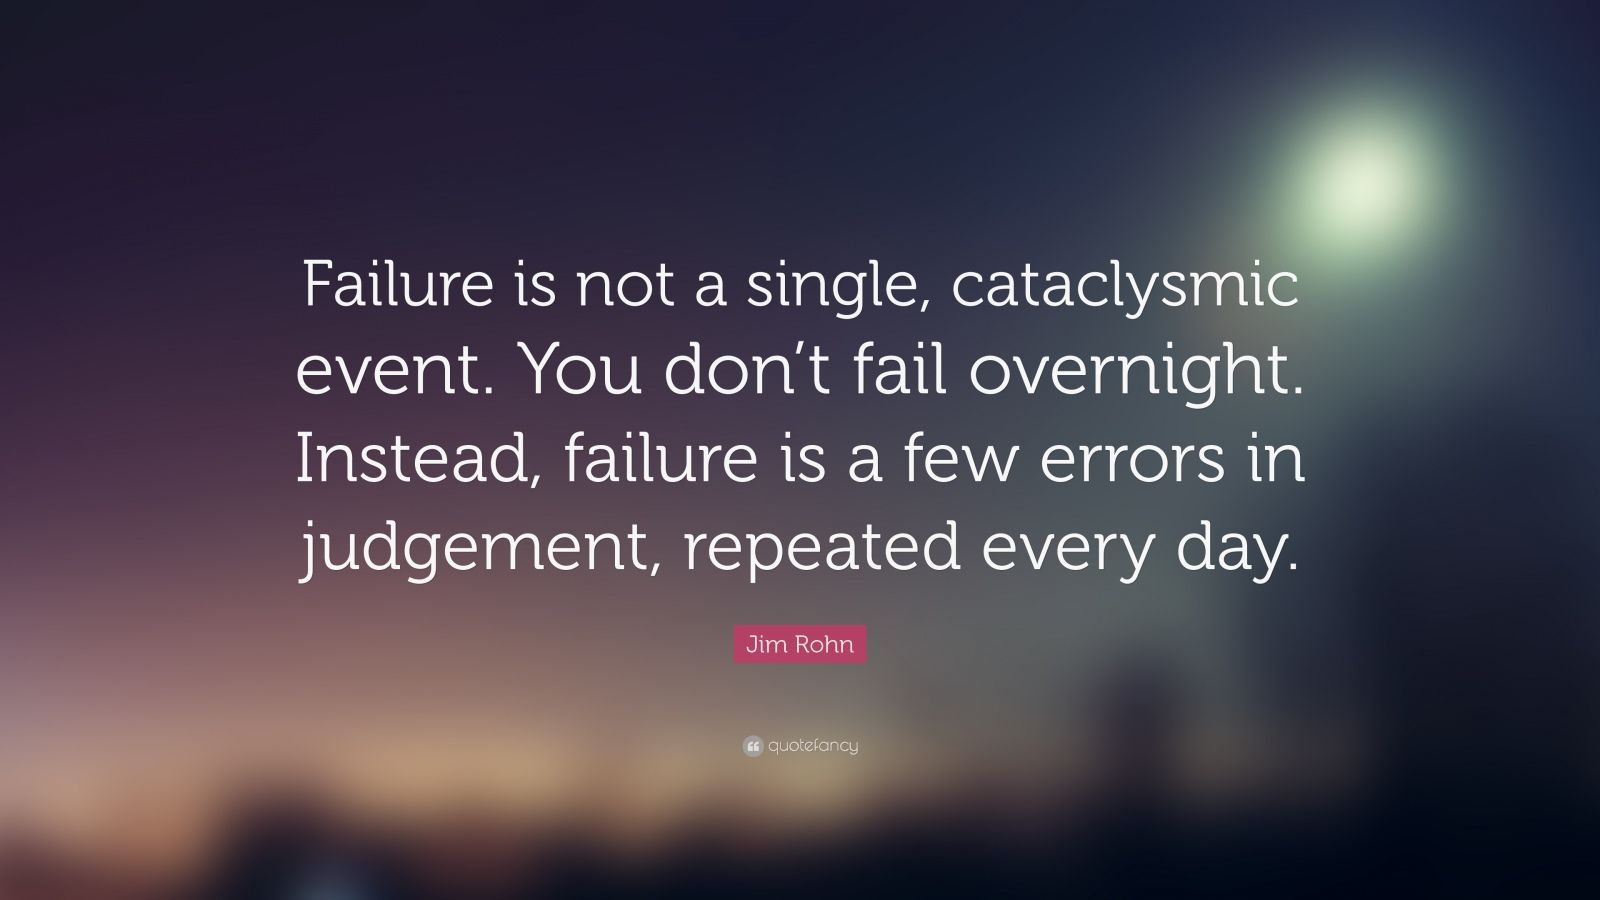 """Jim Rohn Quote: """"Failure is not a single, cataclysmic event. You don't fail overnight. Instead, failure is a few errors in judgement, repeated every day."""""""